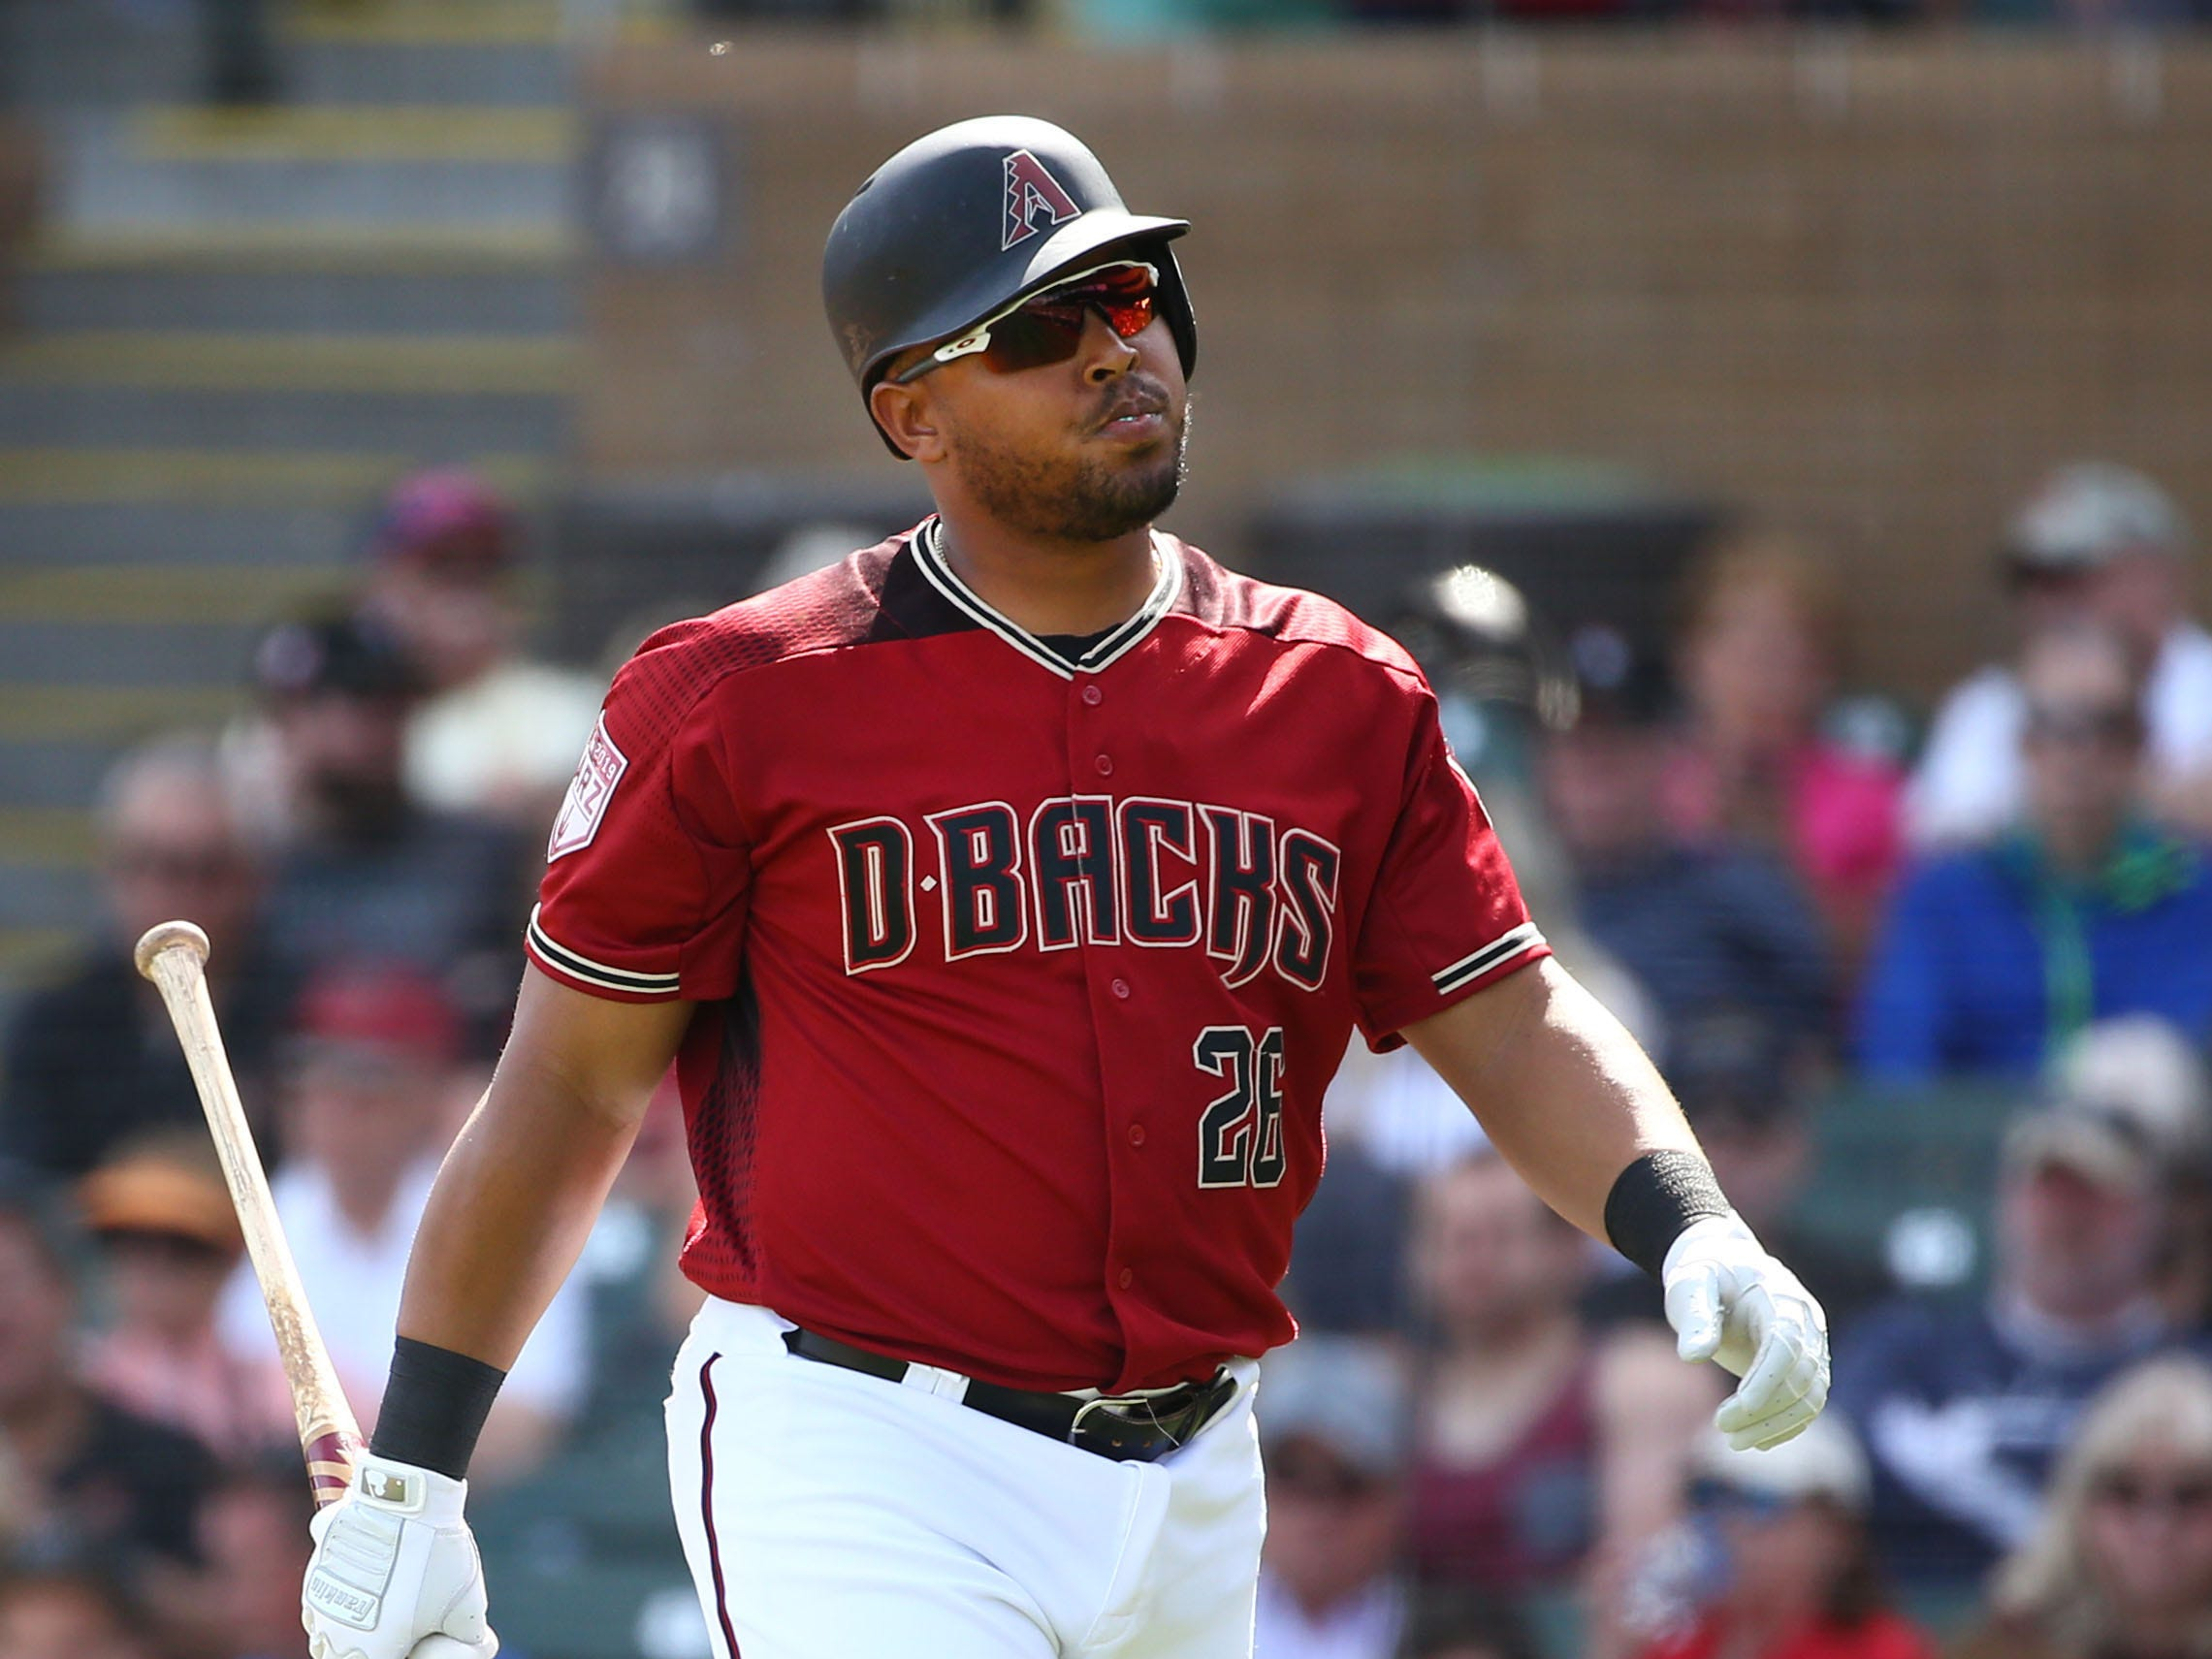 Arizona Diamondbacks Yasmany Tomas (26) strikes out against the Cincinnati Reds in the third inning during a spring training game on Mar. 4, 2019, at Salt River Fields in Scottsdale, Ariz.